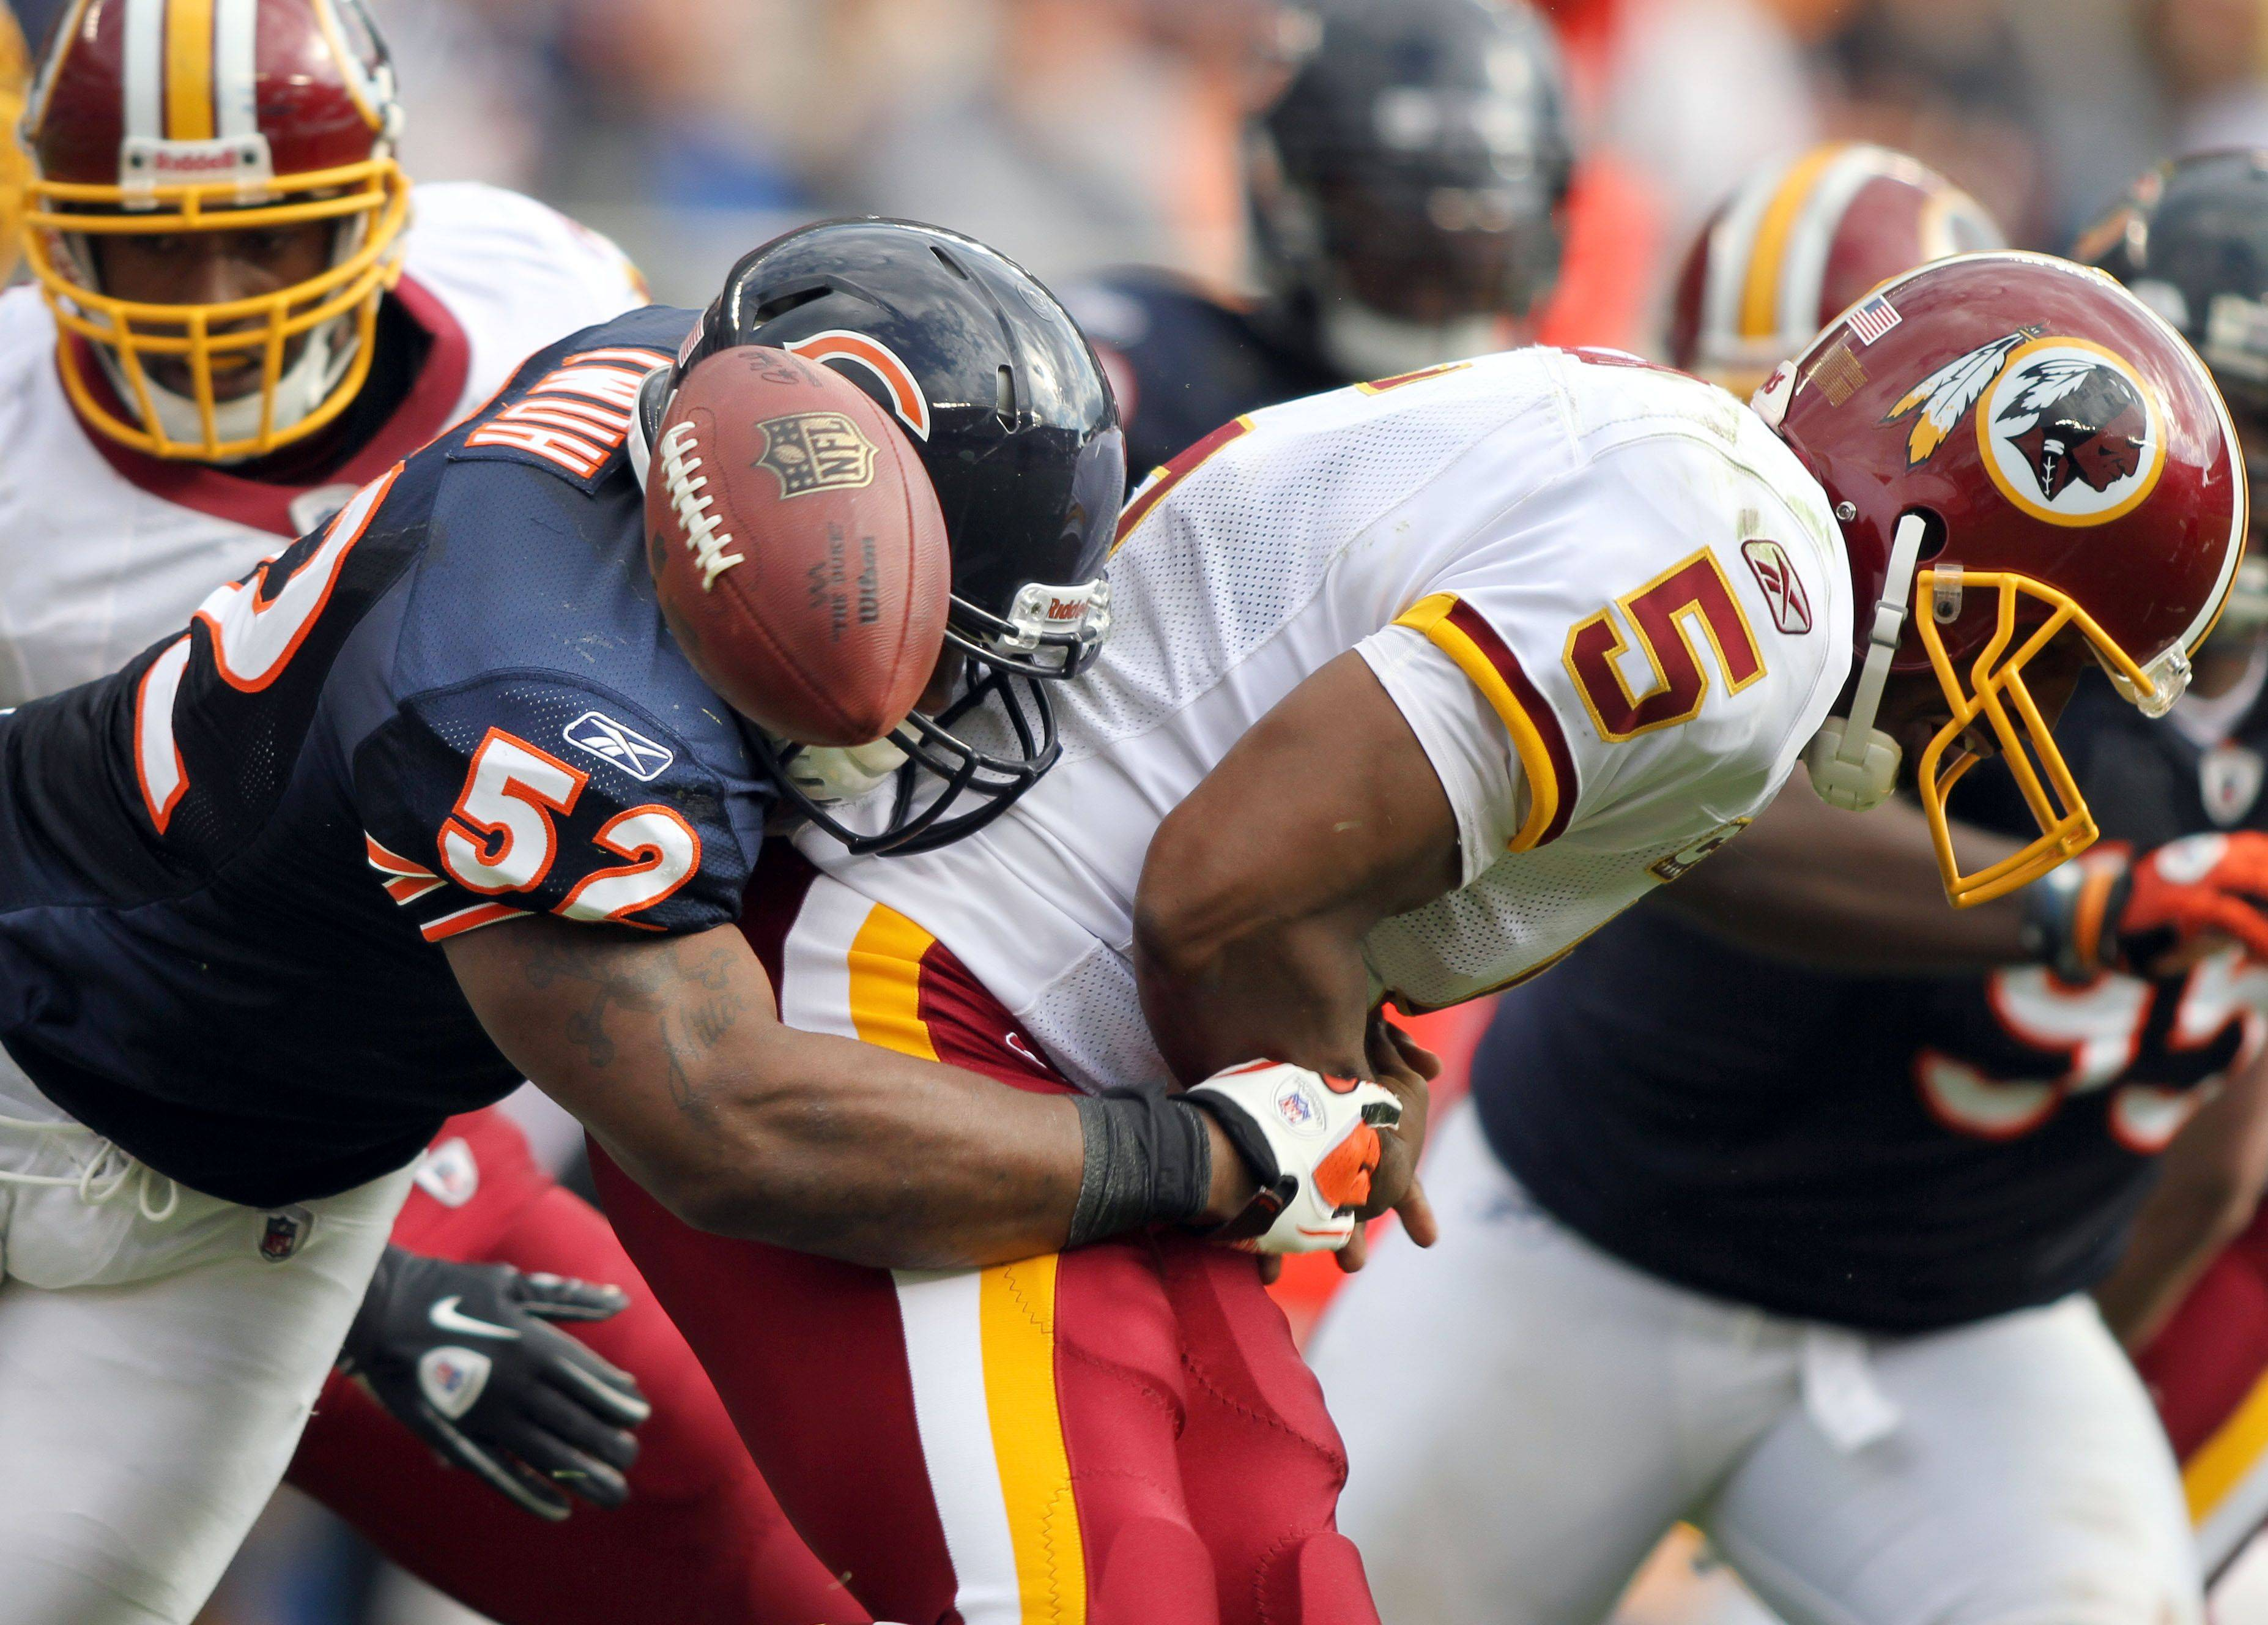 Chicago Bears linebacker Brian Iwuh sacks Washington Redskins quarterback Donovan McNabb during the Bears' 14-17 loss to the Redskins.